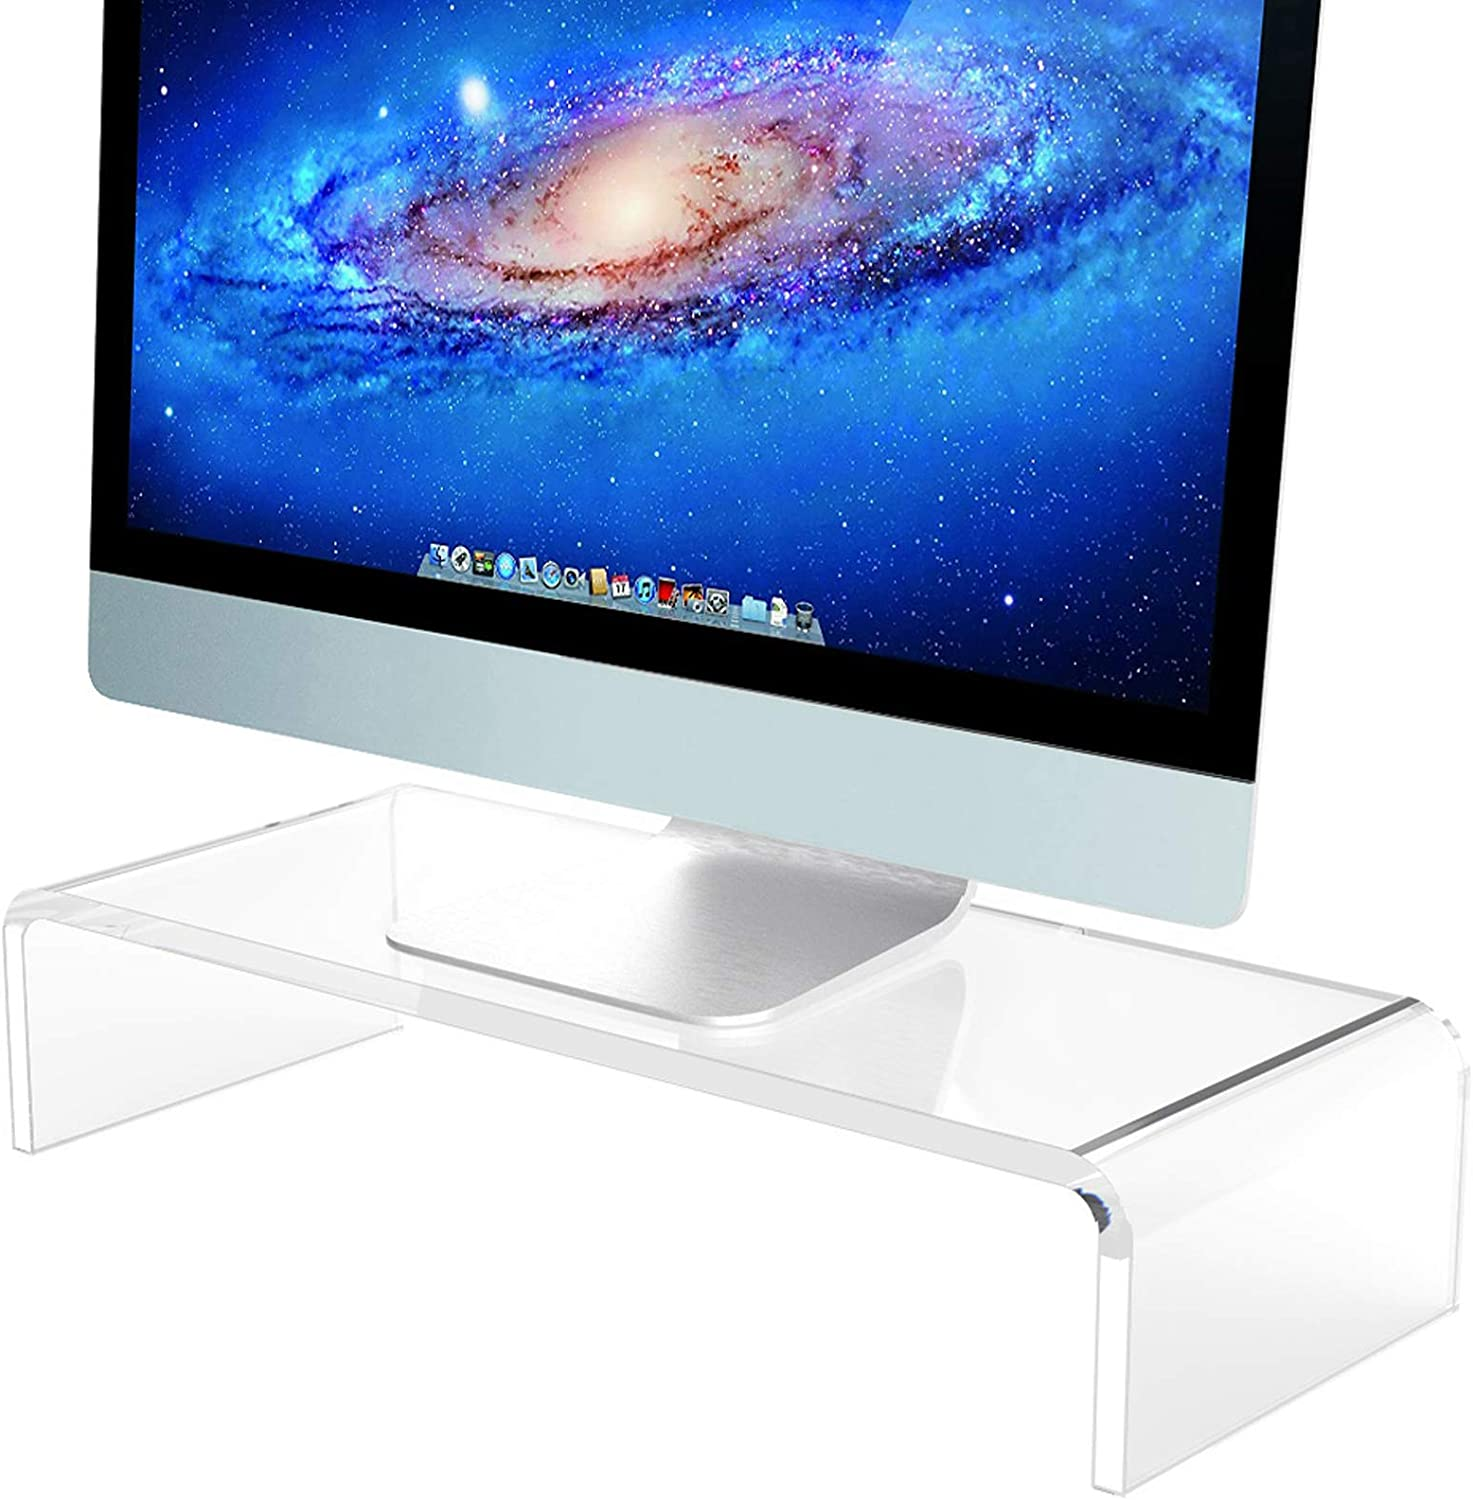 Clear Computer Stand, Acrylic Computer Monitor Riser with Sturdy, Hold up to 50lbs Desktop Monitor Stand Heavy Duty Computer Stand Acrylic, Monitor Stand Riser for Ergonomic Working